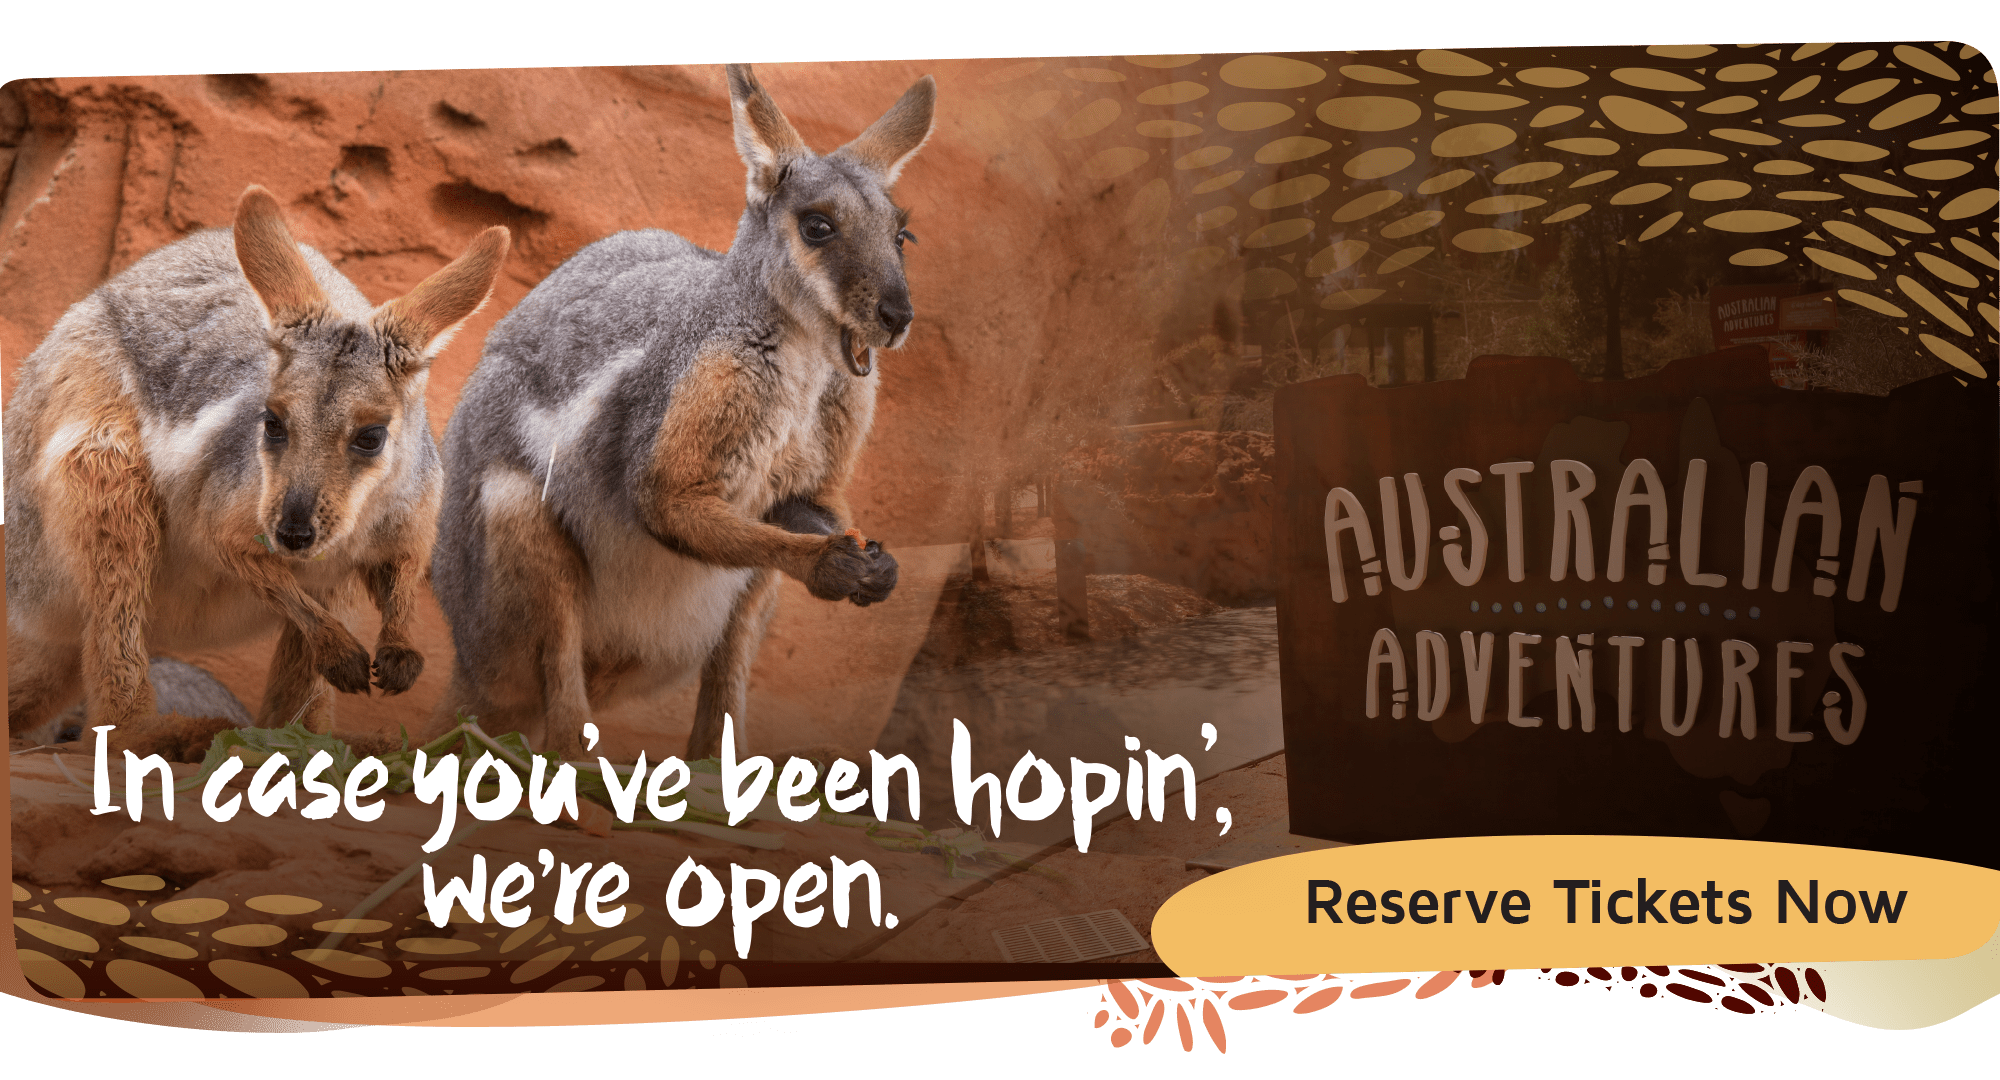 Australian Adventures Now Open